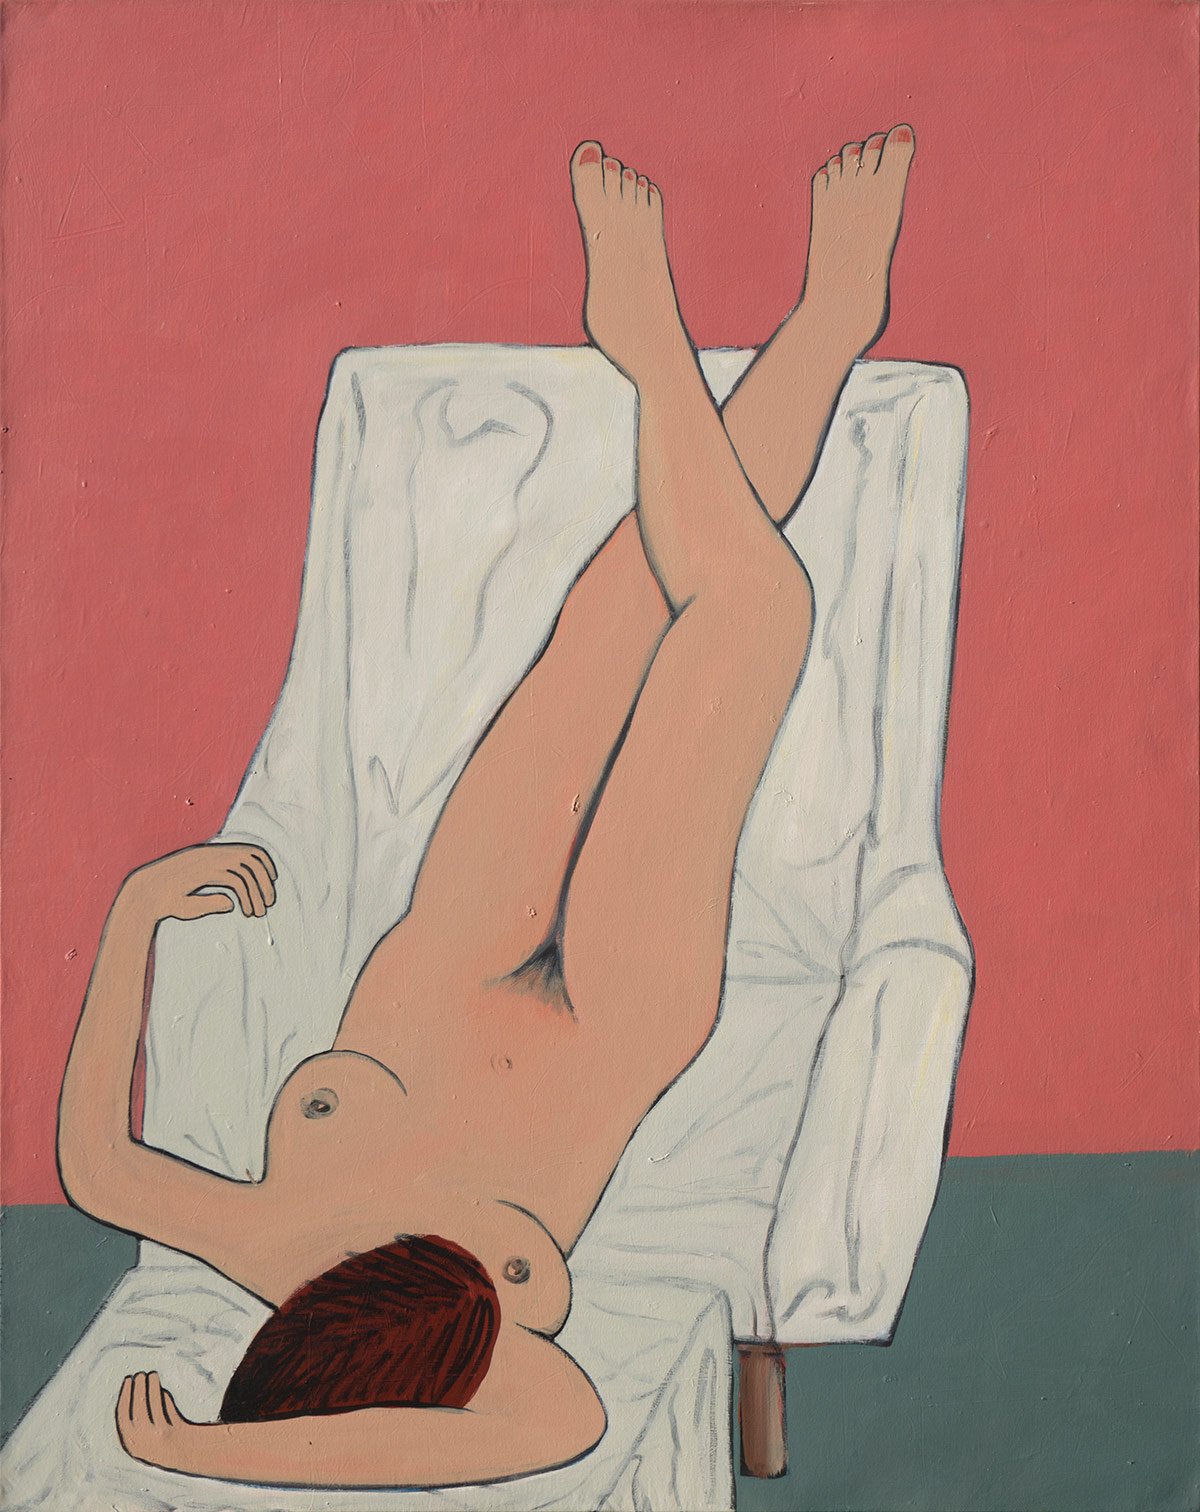 Figurative #275, Acrylic on Canvas, 1994 © Dan Badgley. All rights reserved.